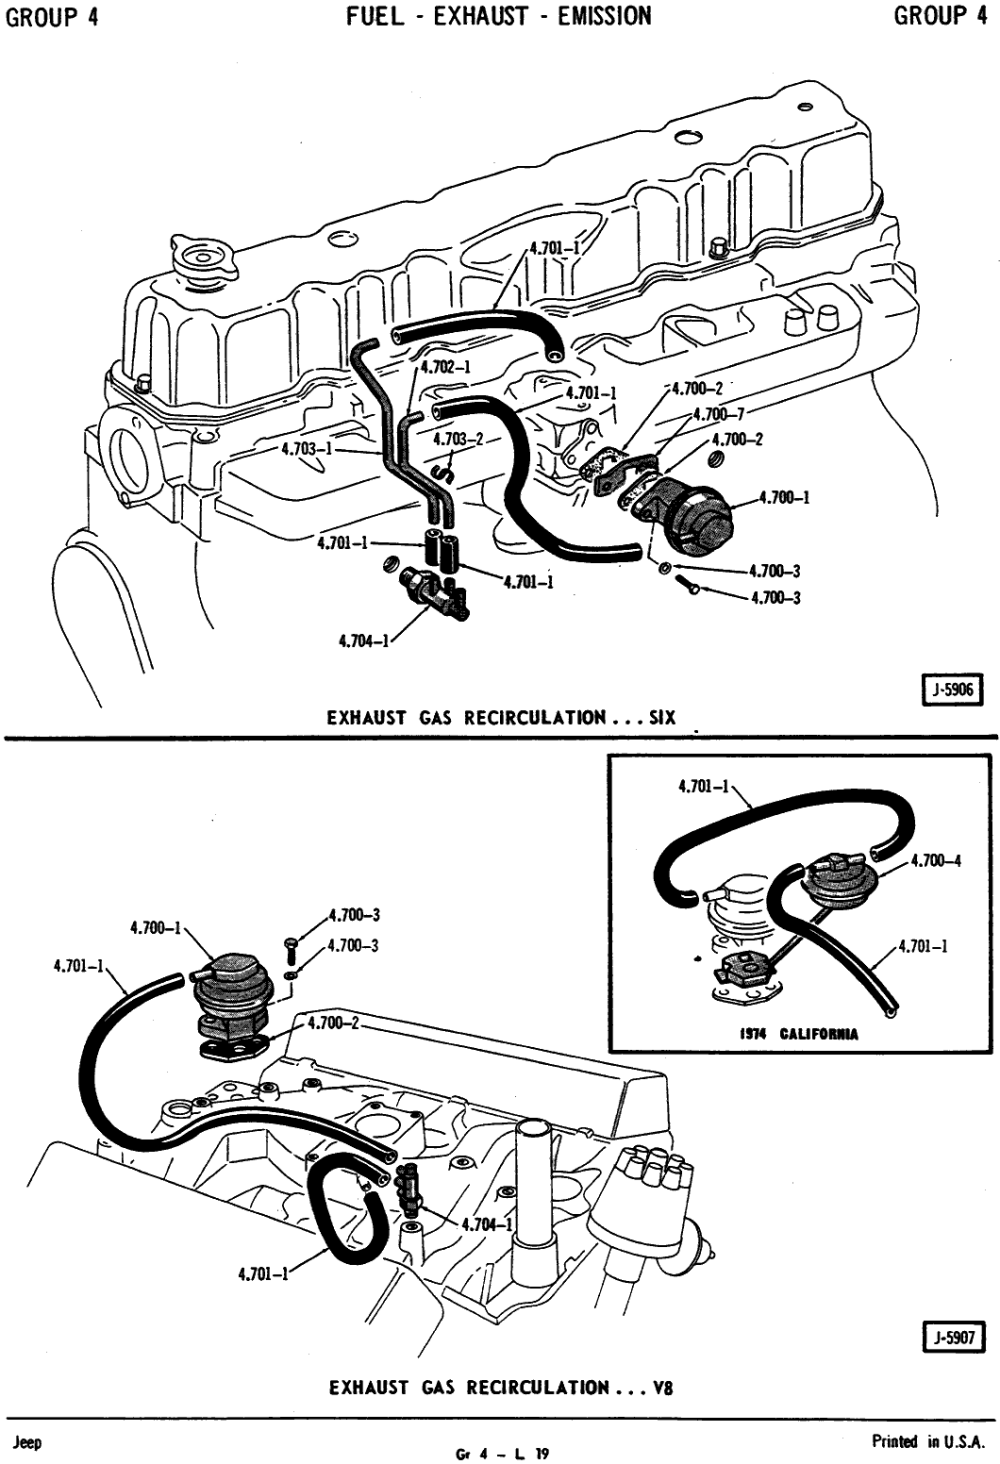 medium resolution of 1997 jeep wrangler fuel system diagram wiring diagram portal jeep fuel line diagrams cj5 fuel system diagram